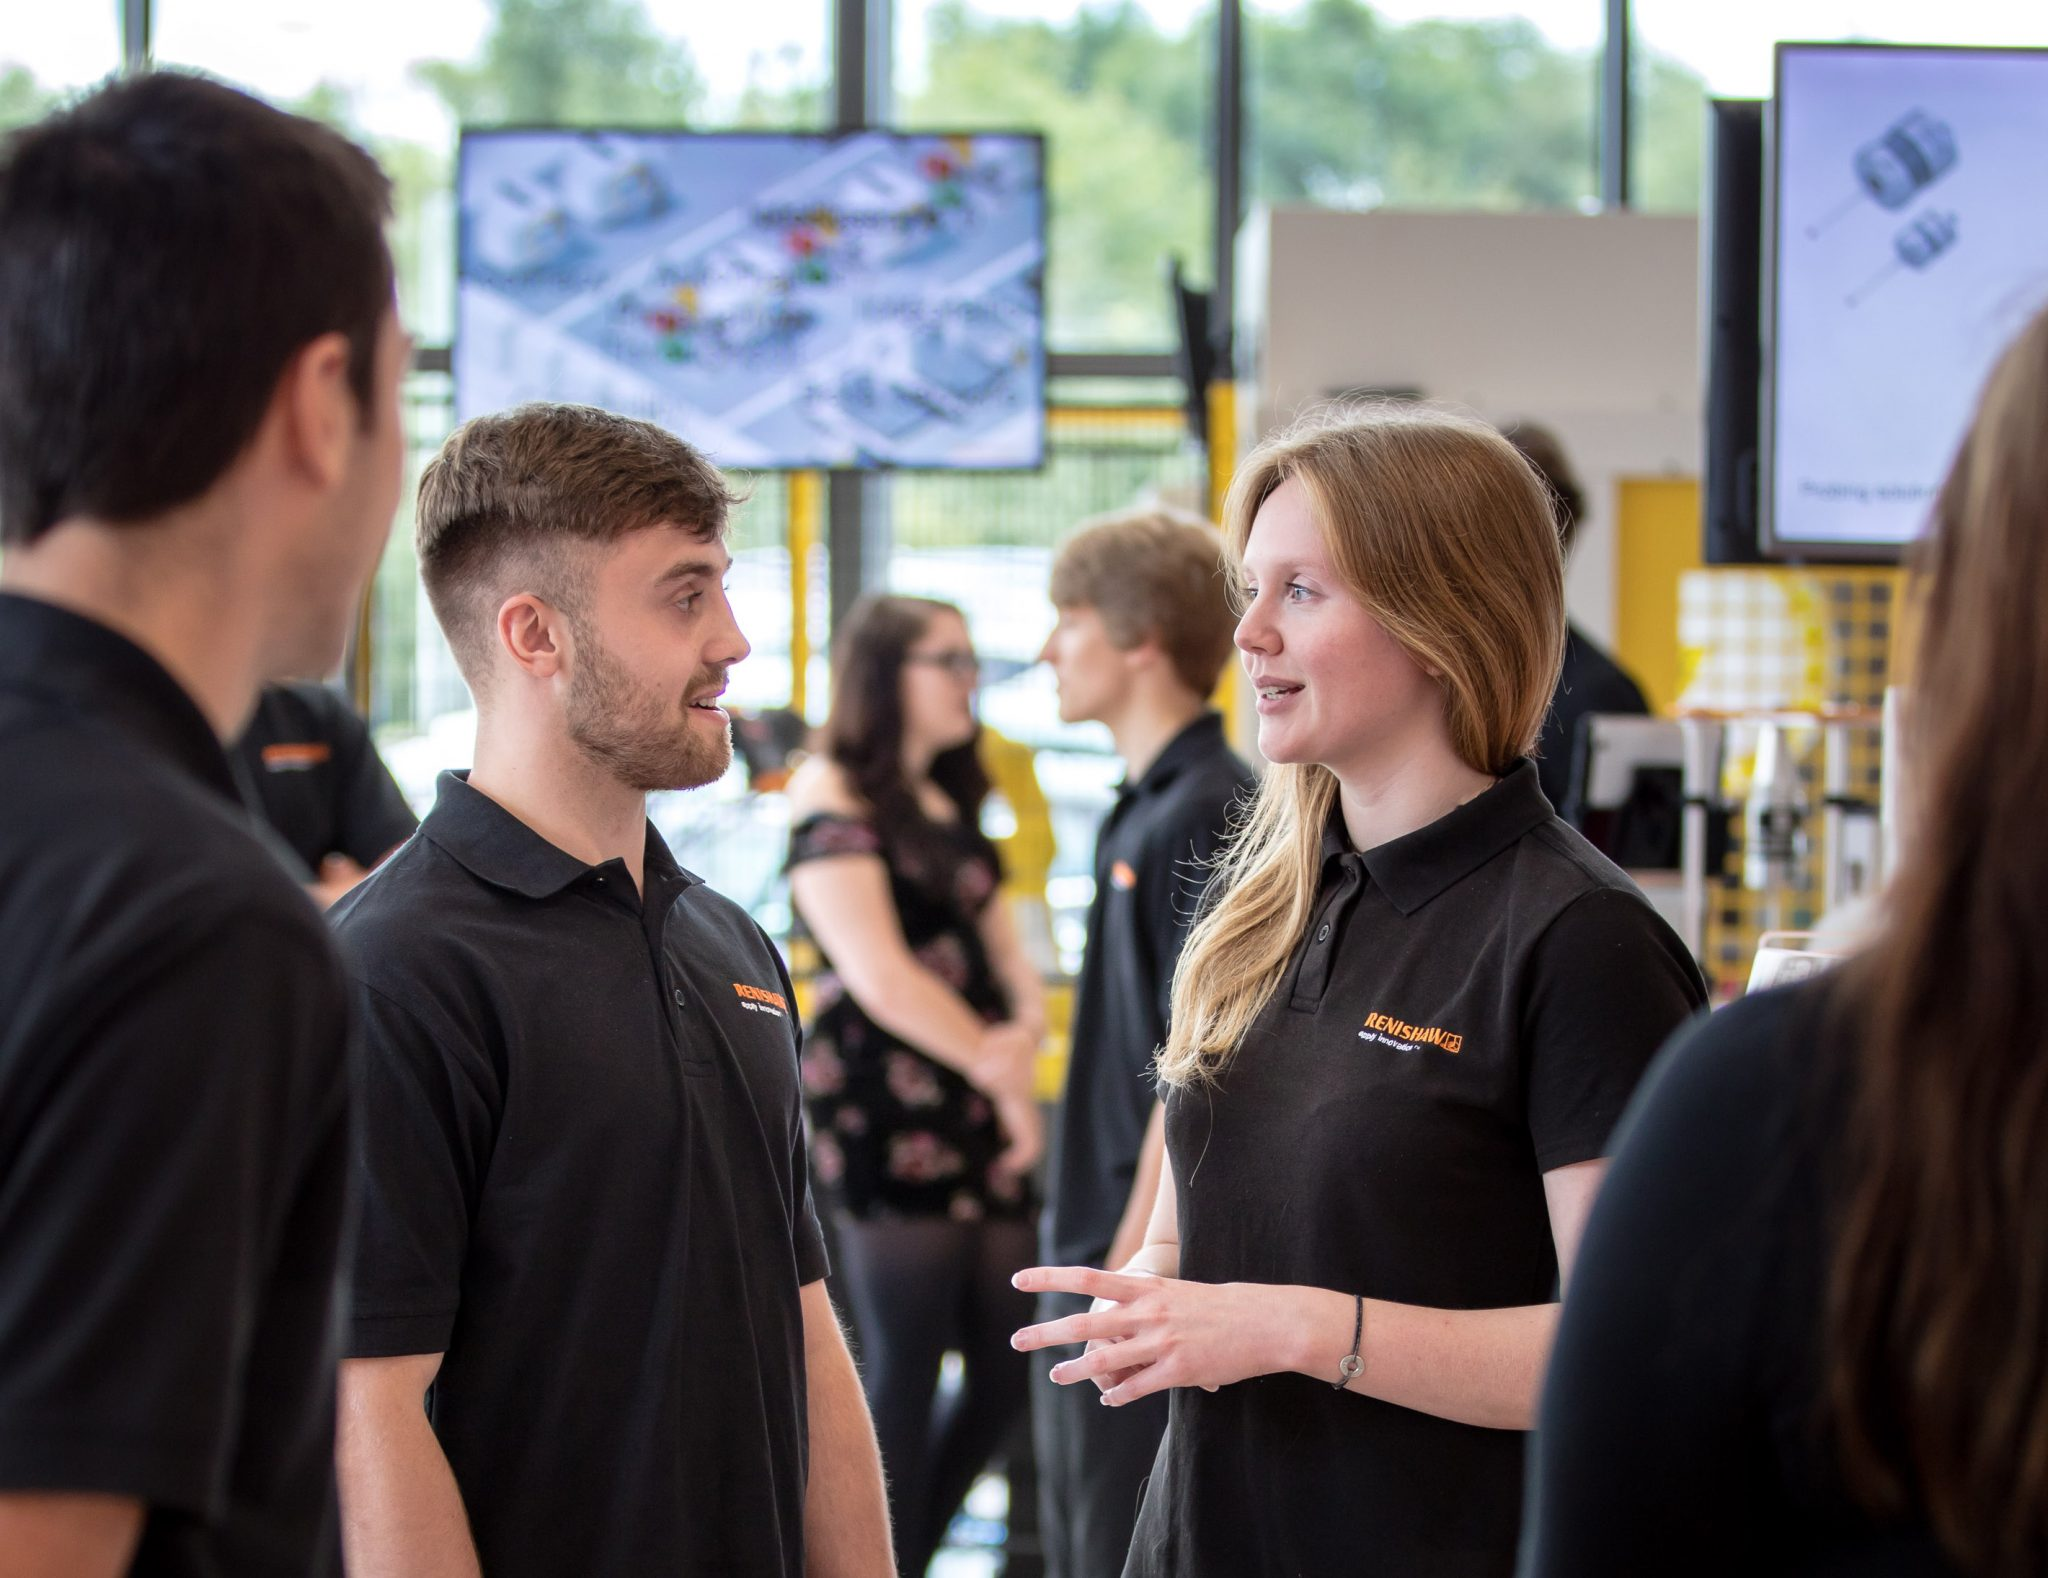 Renishaw apprentices 2018 at the event. Image via Renishaw